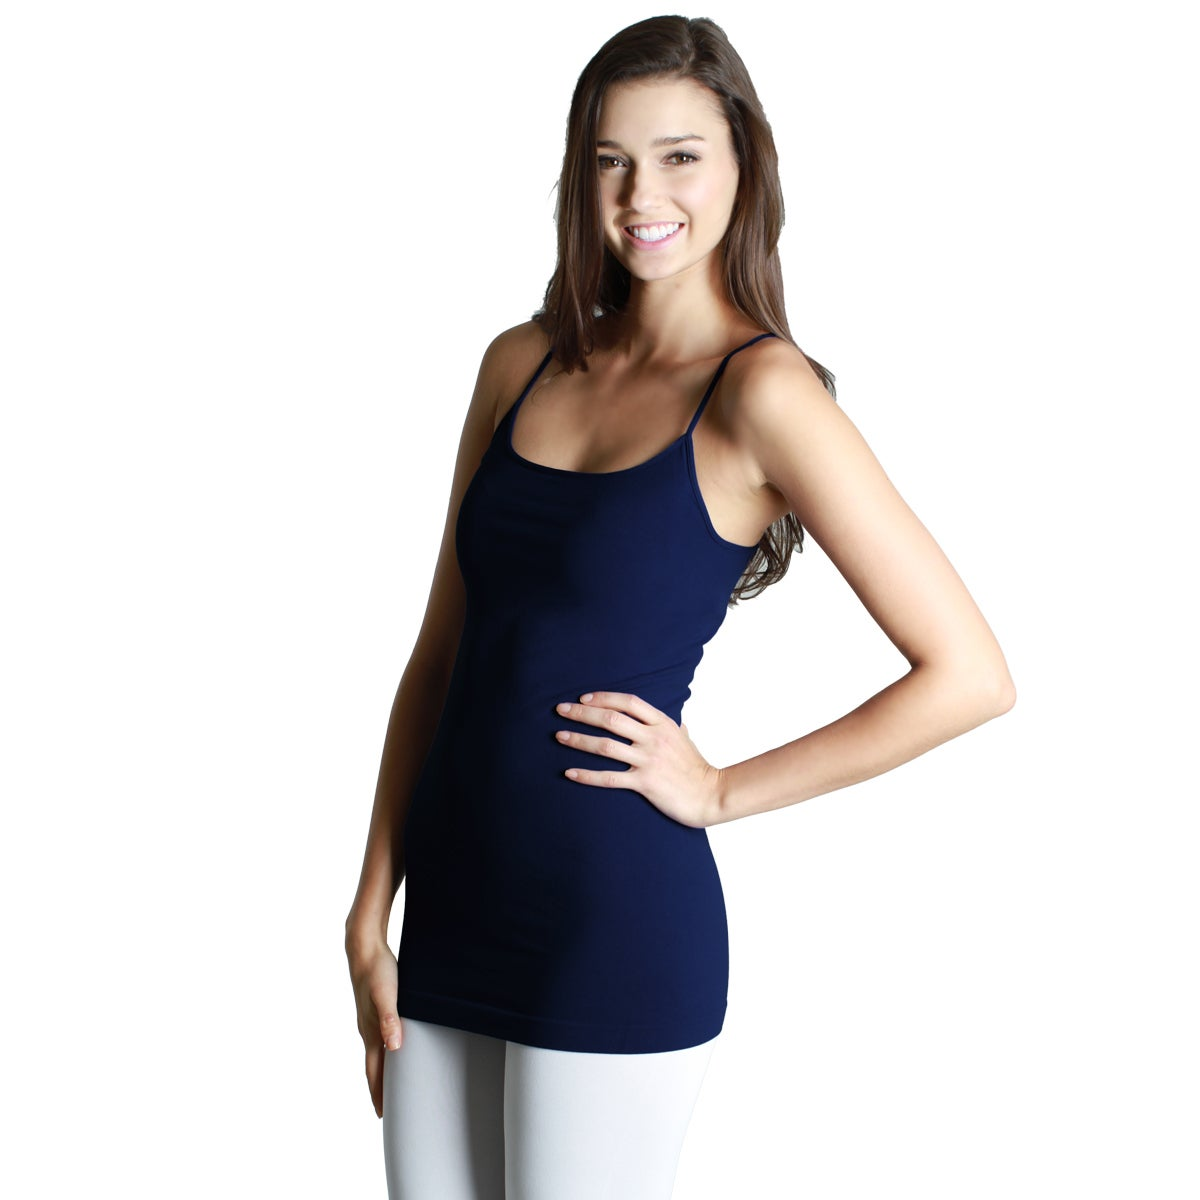 ea5ae8fbd0474 Shop Nikibiki Women s Model NS4011 Nylon and Spandex Seamless Signature  Long Camisole Top - Free Shipping On Orders Over  45 - Overstock - 9787126